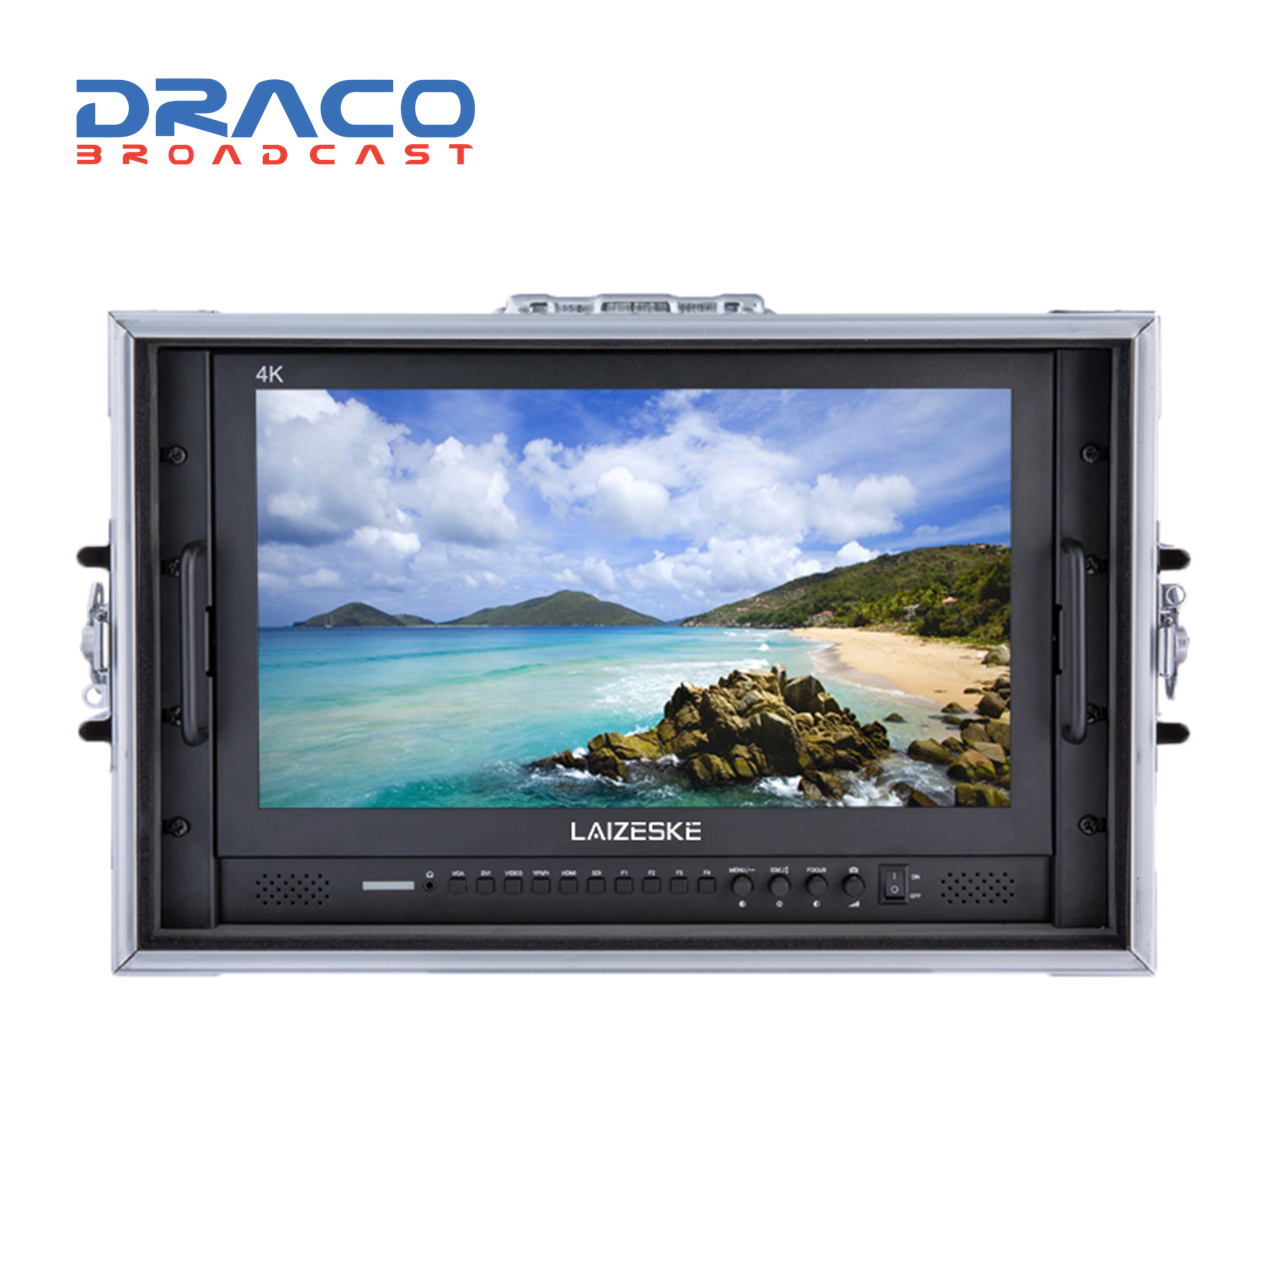 Laizeske 17.3″ Full-HD Carry-On Broadcast Director Monitor with HDMI and 3G-SDI